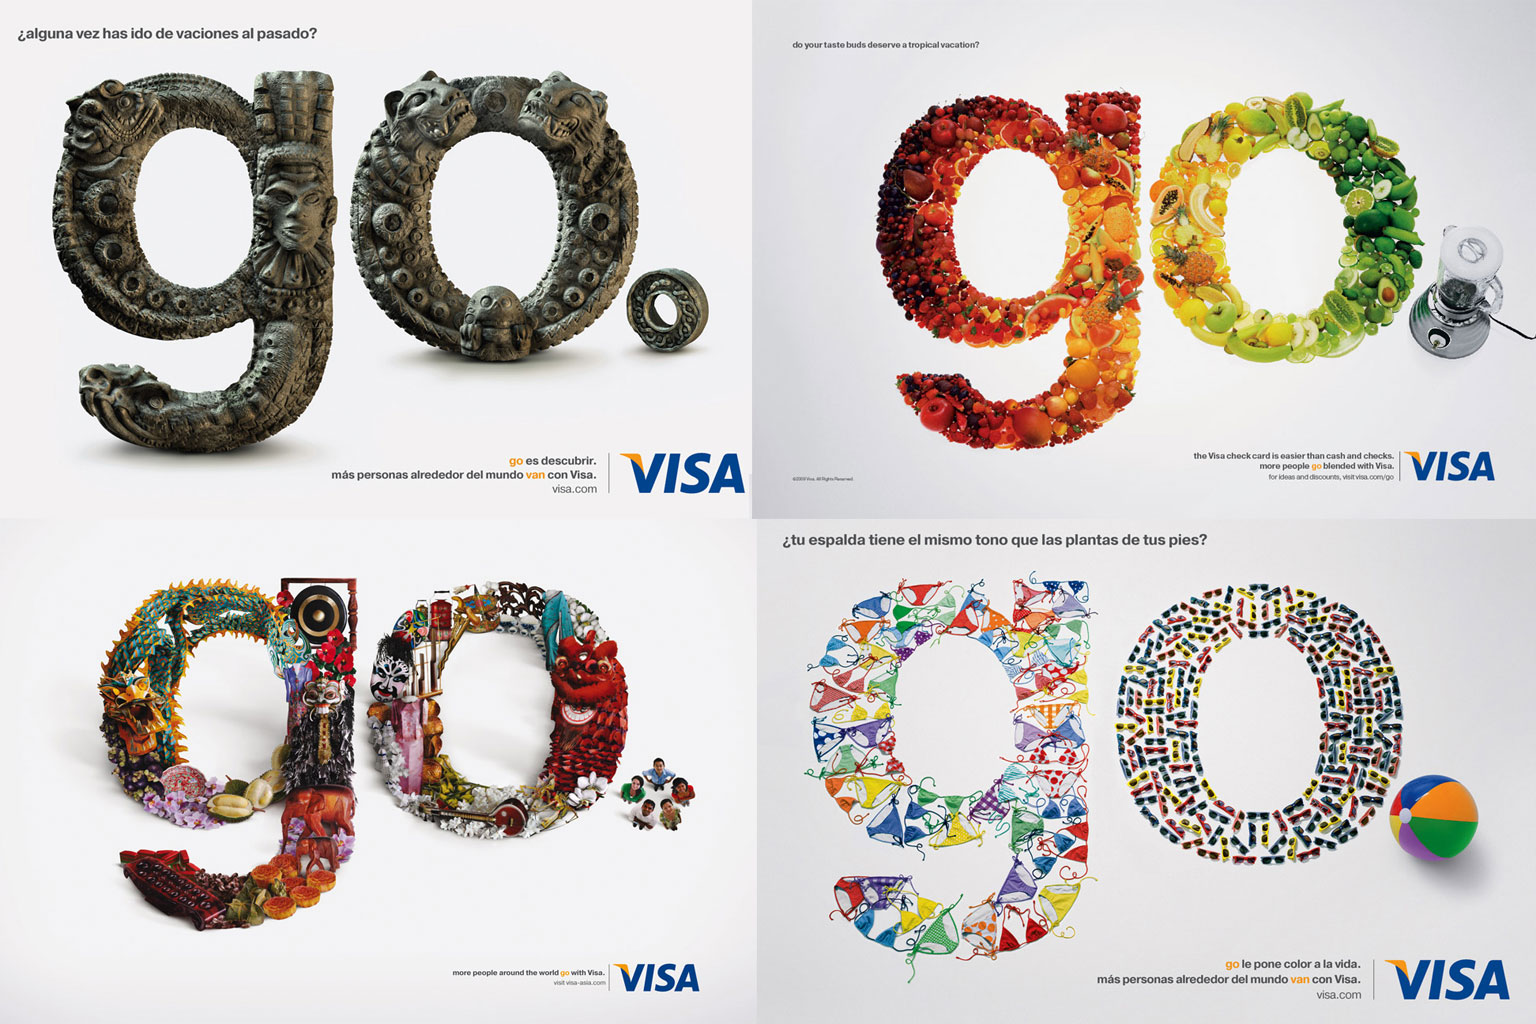 go visa reloadable debit cards view original updated on 10 2 2014. Cars Review. Best American Auto & Cars Review